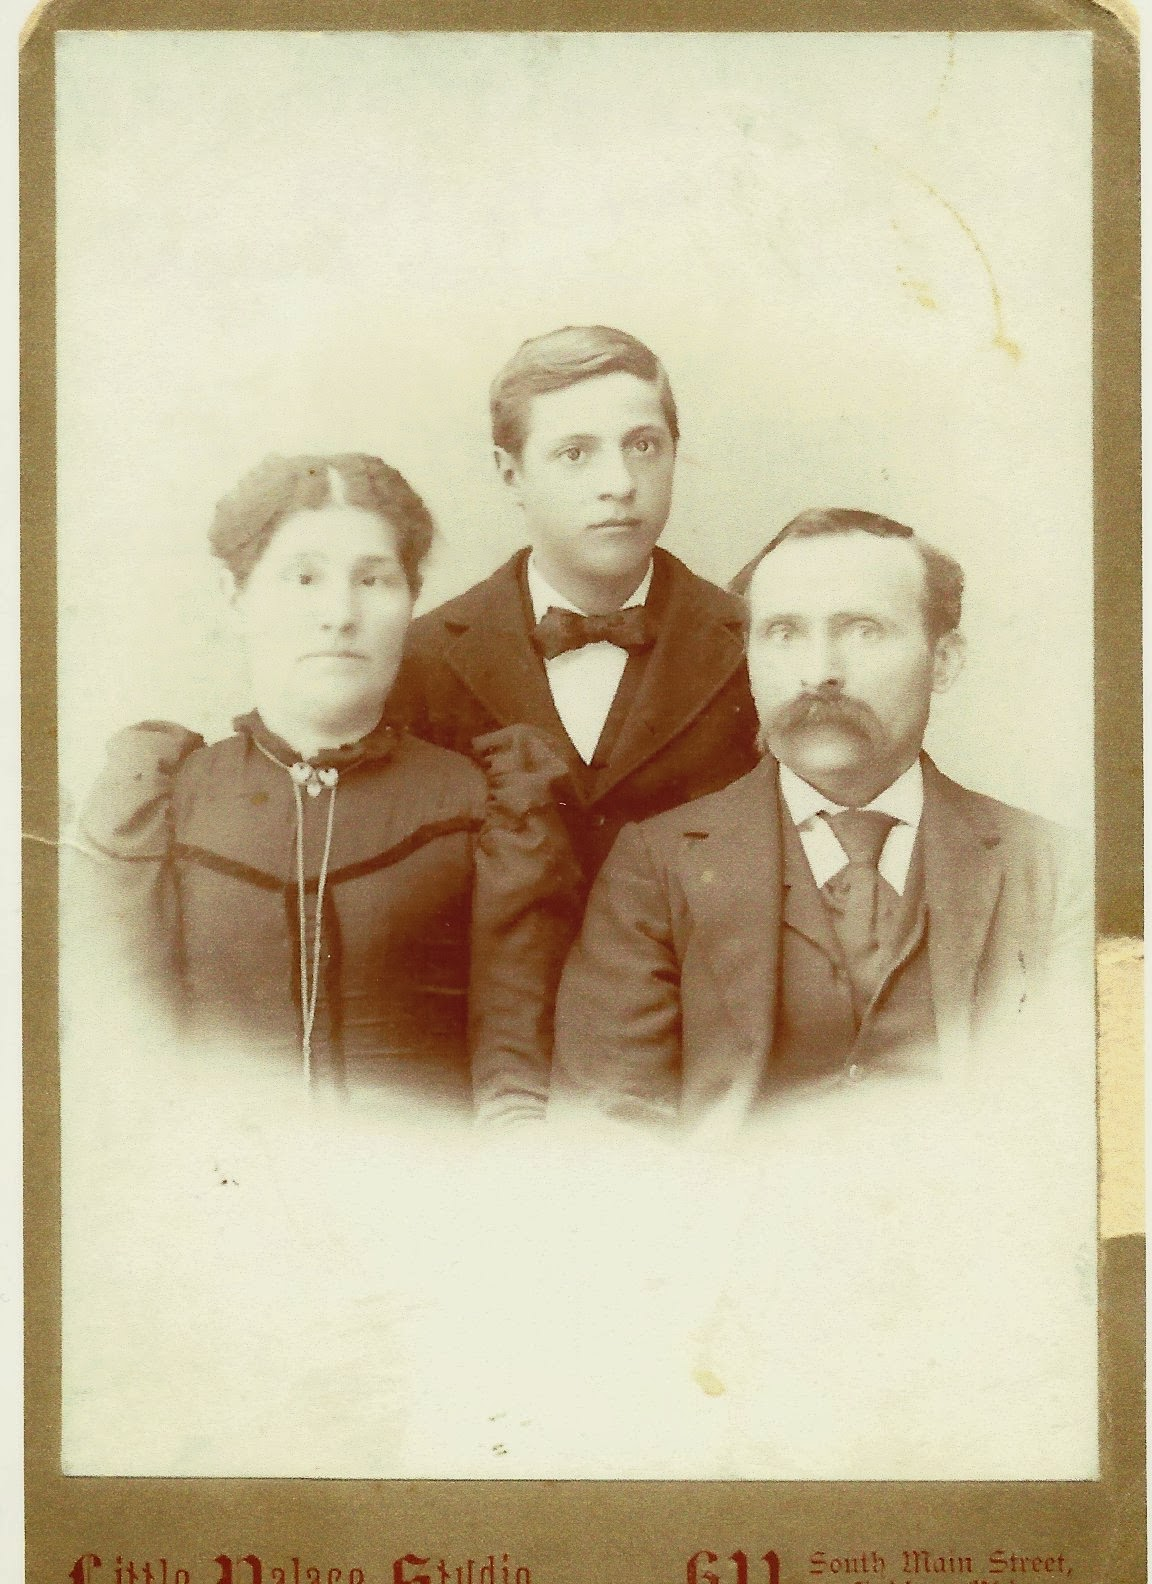 Climbing My Family Tree: Kathryn (1857-1931), Philip (1882-1967), and John Snyder (1854-1925)